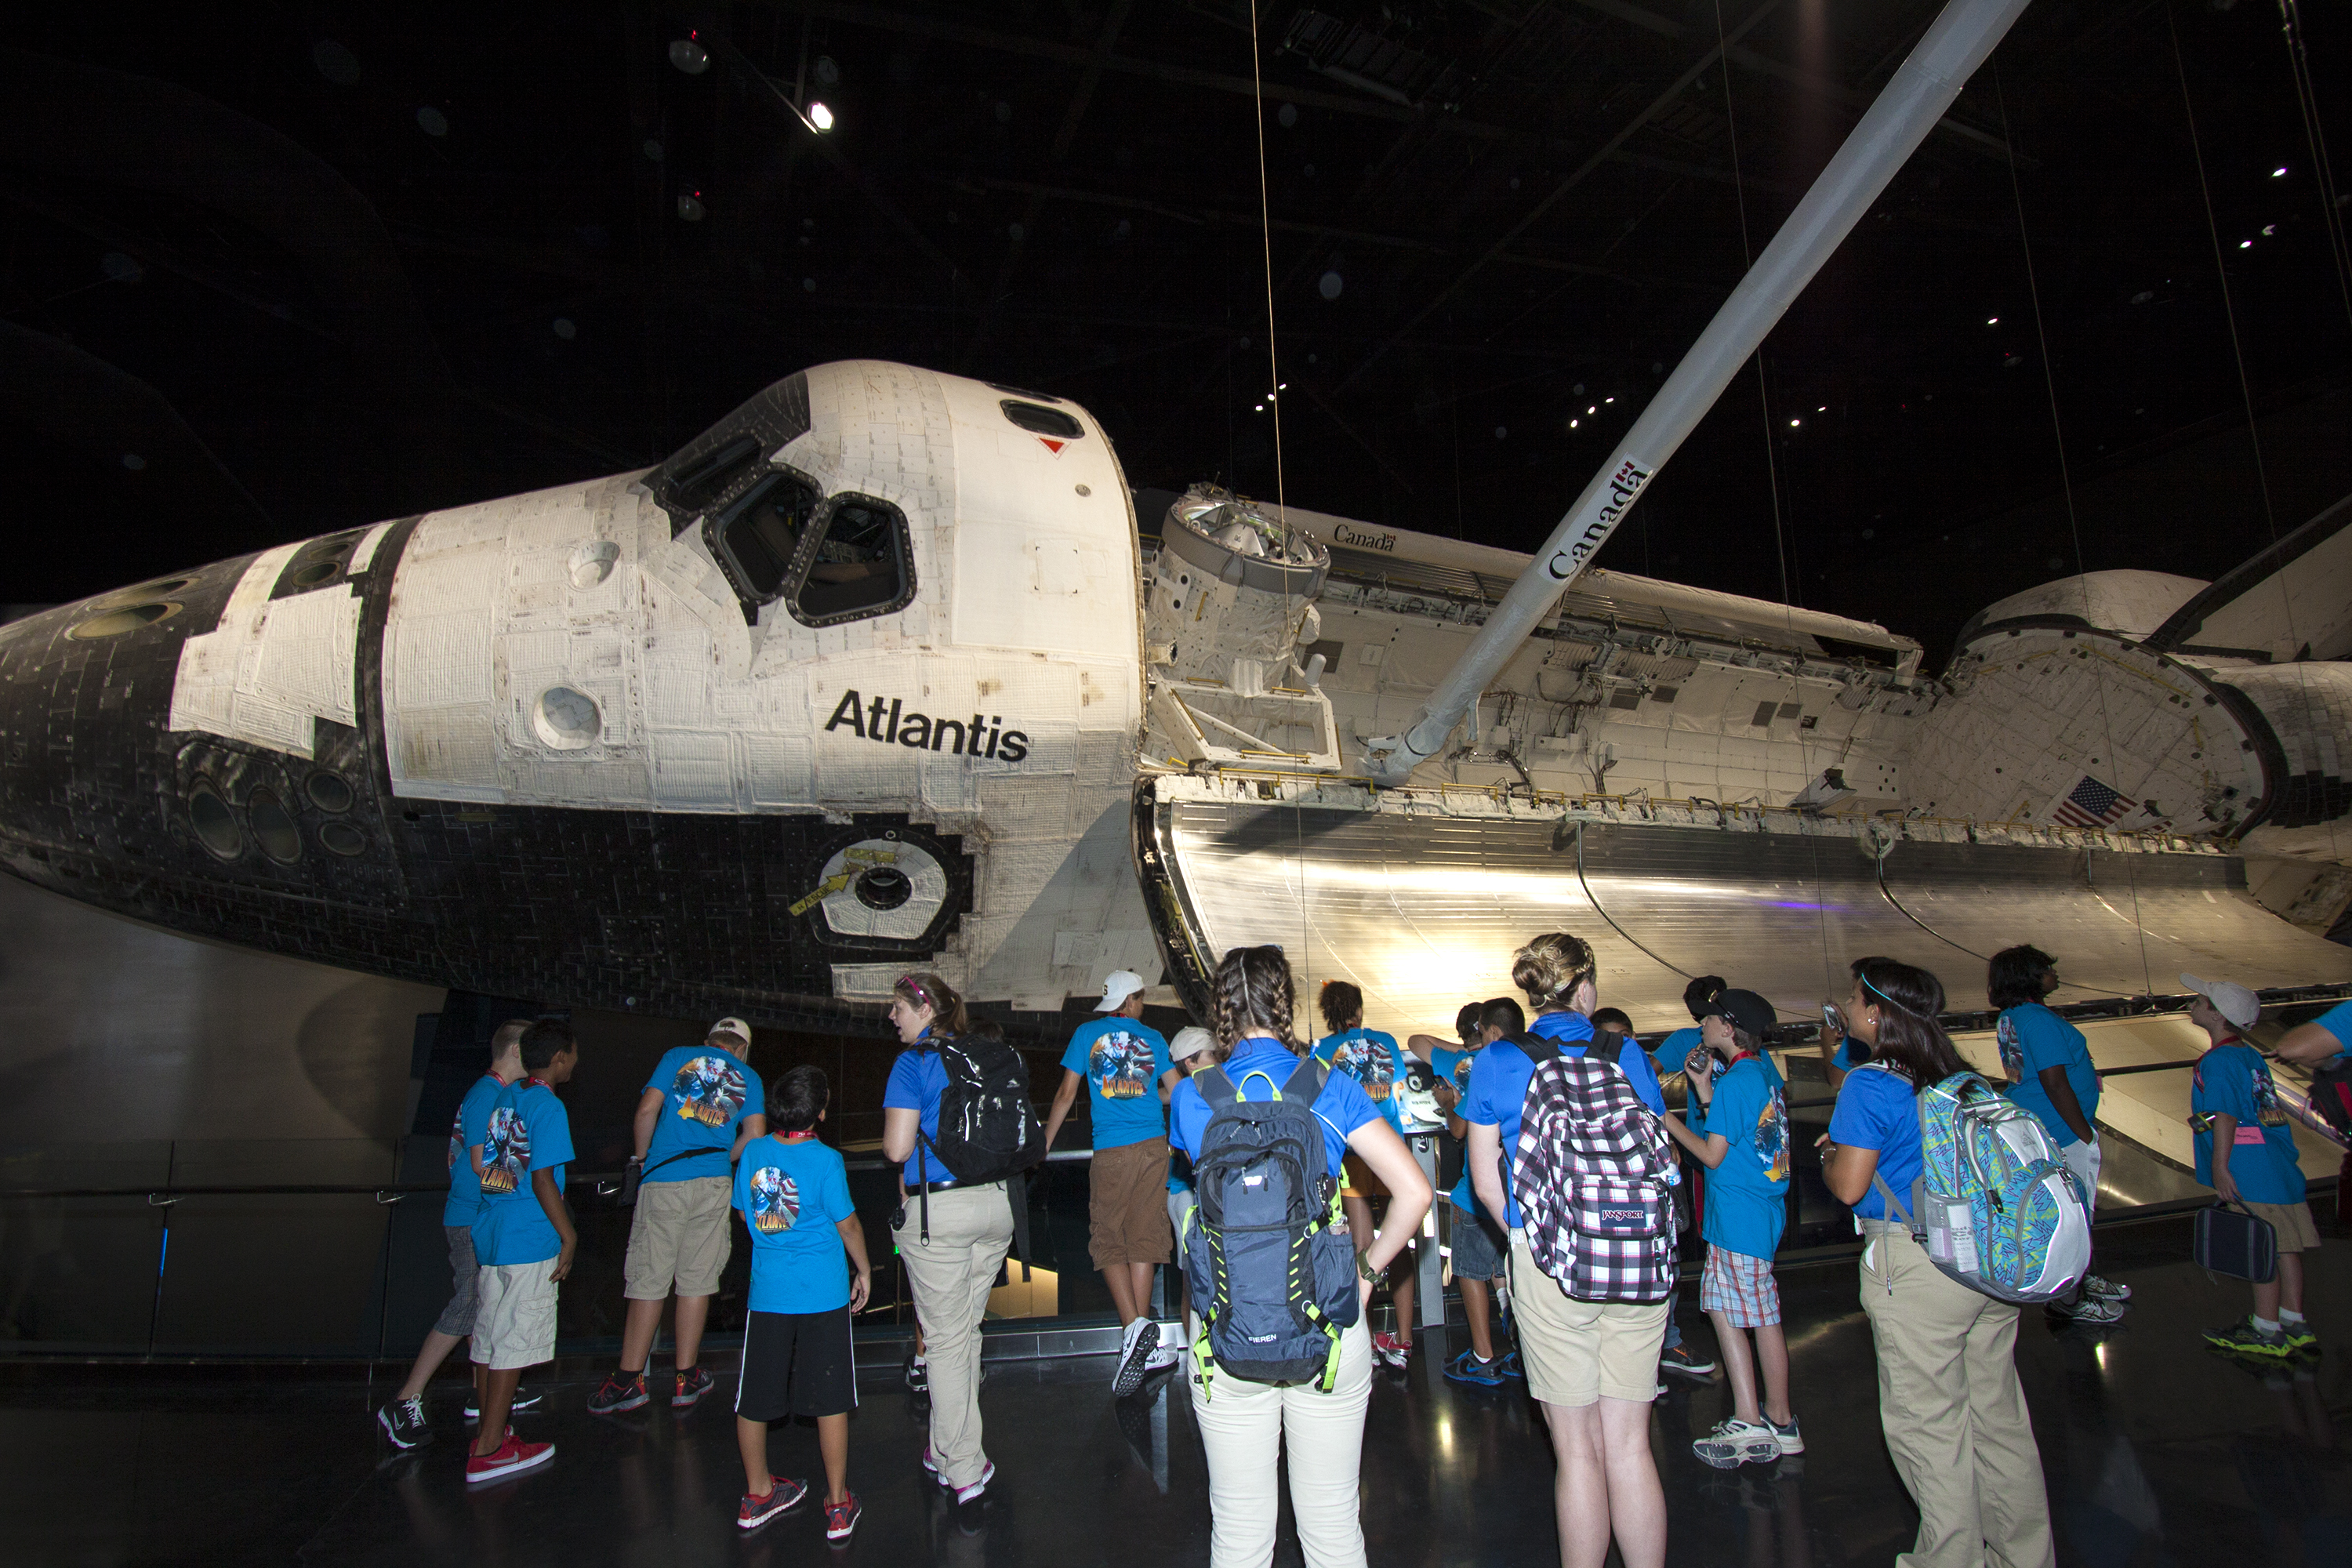 Up-close Look at Space Shuttle Atlantis